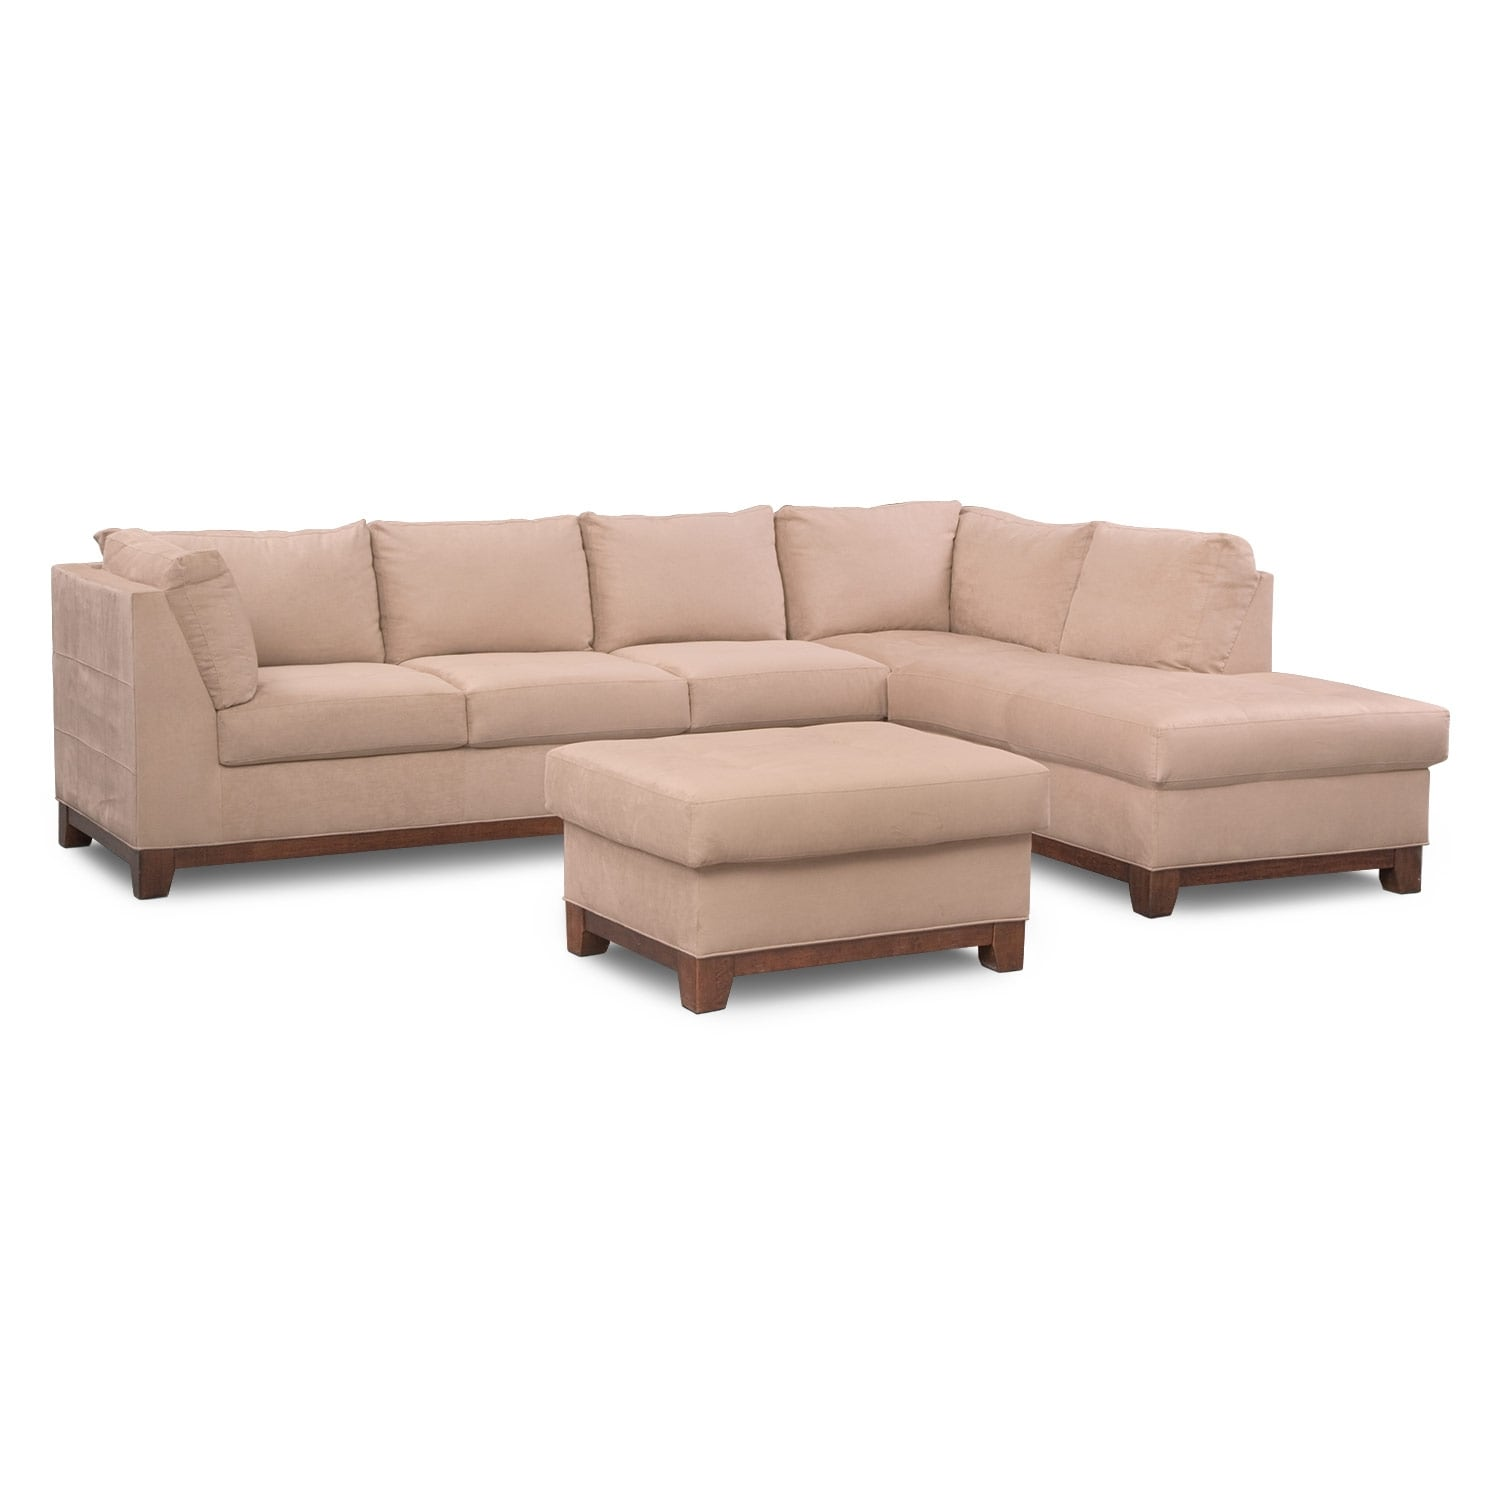 Living Room Furniture - Soho 2-Piece Right-Facing Sectional and Ottoman - Cobblestone